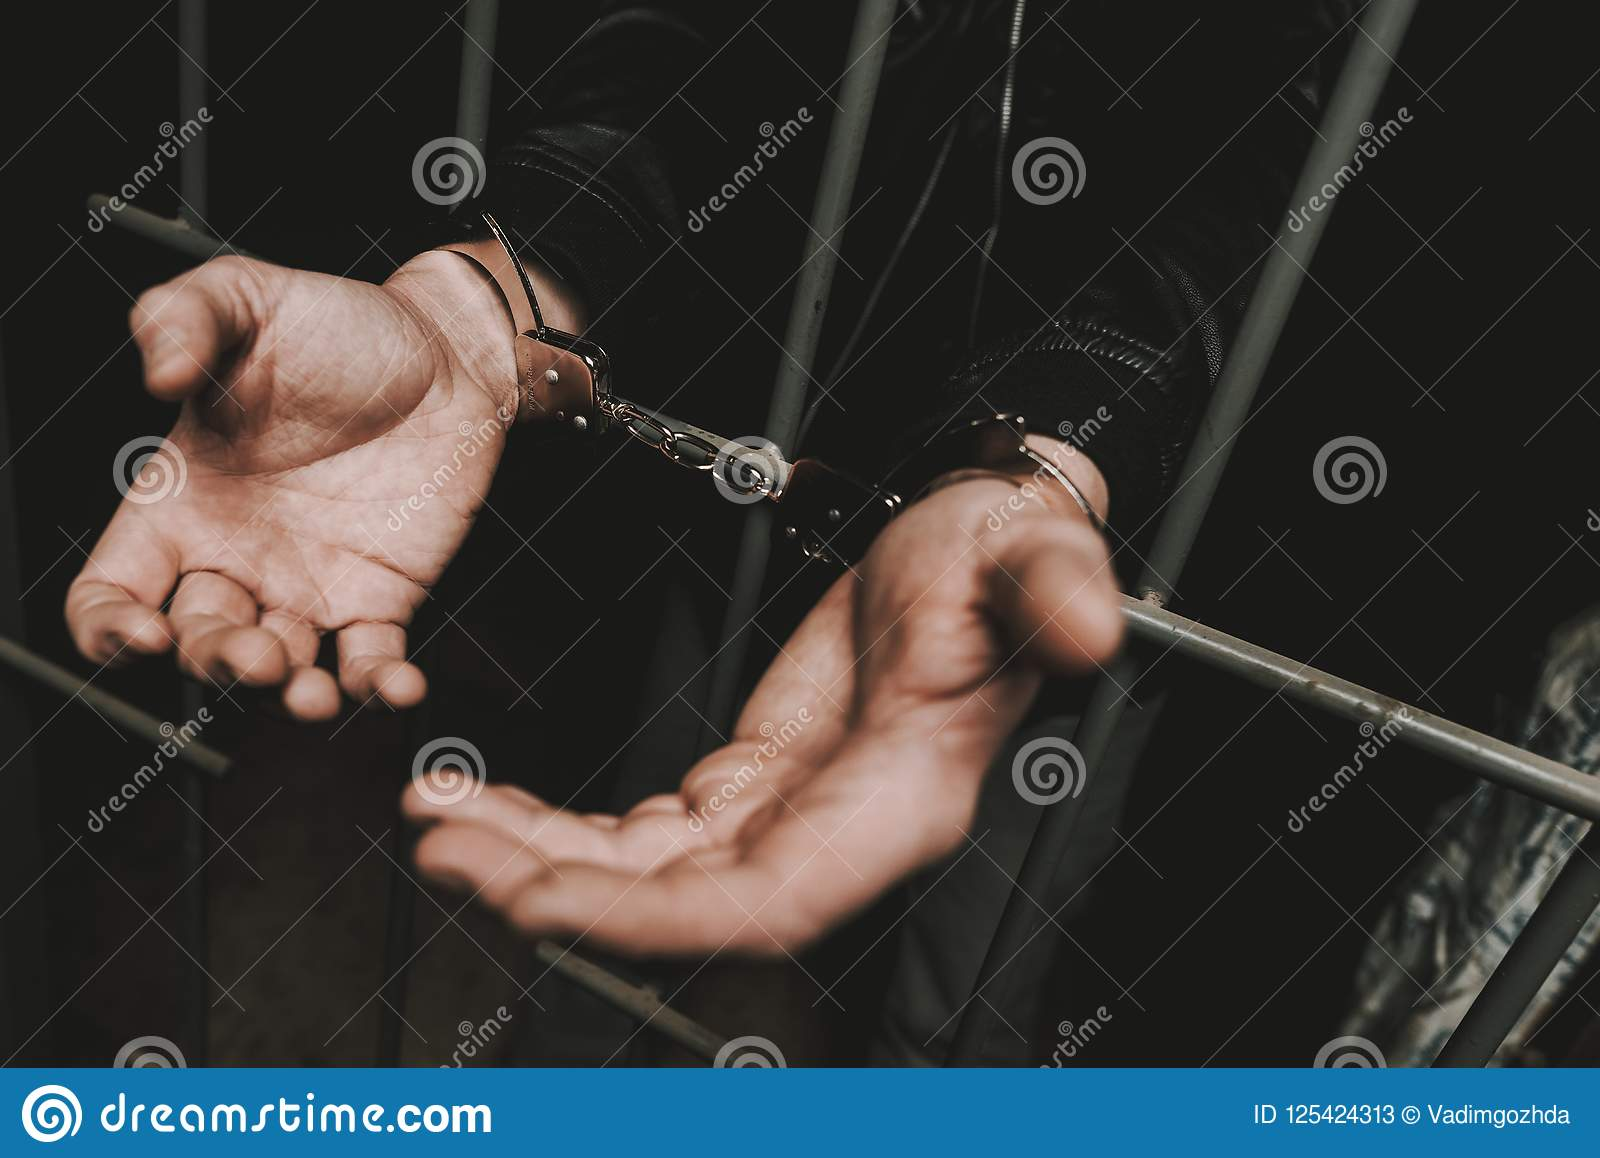 Man In Handcuffs Behind Bars In A Police Station.